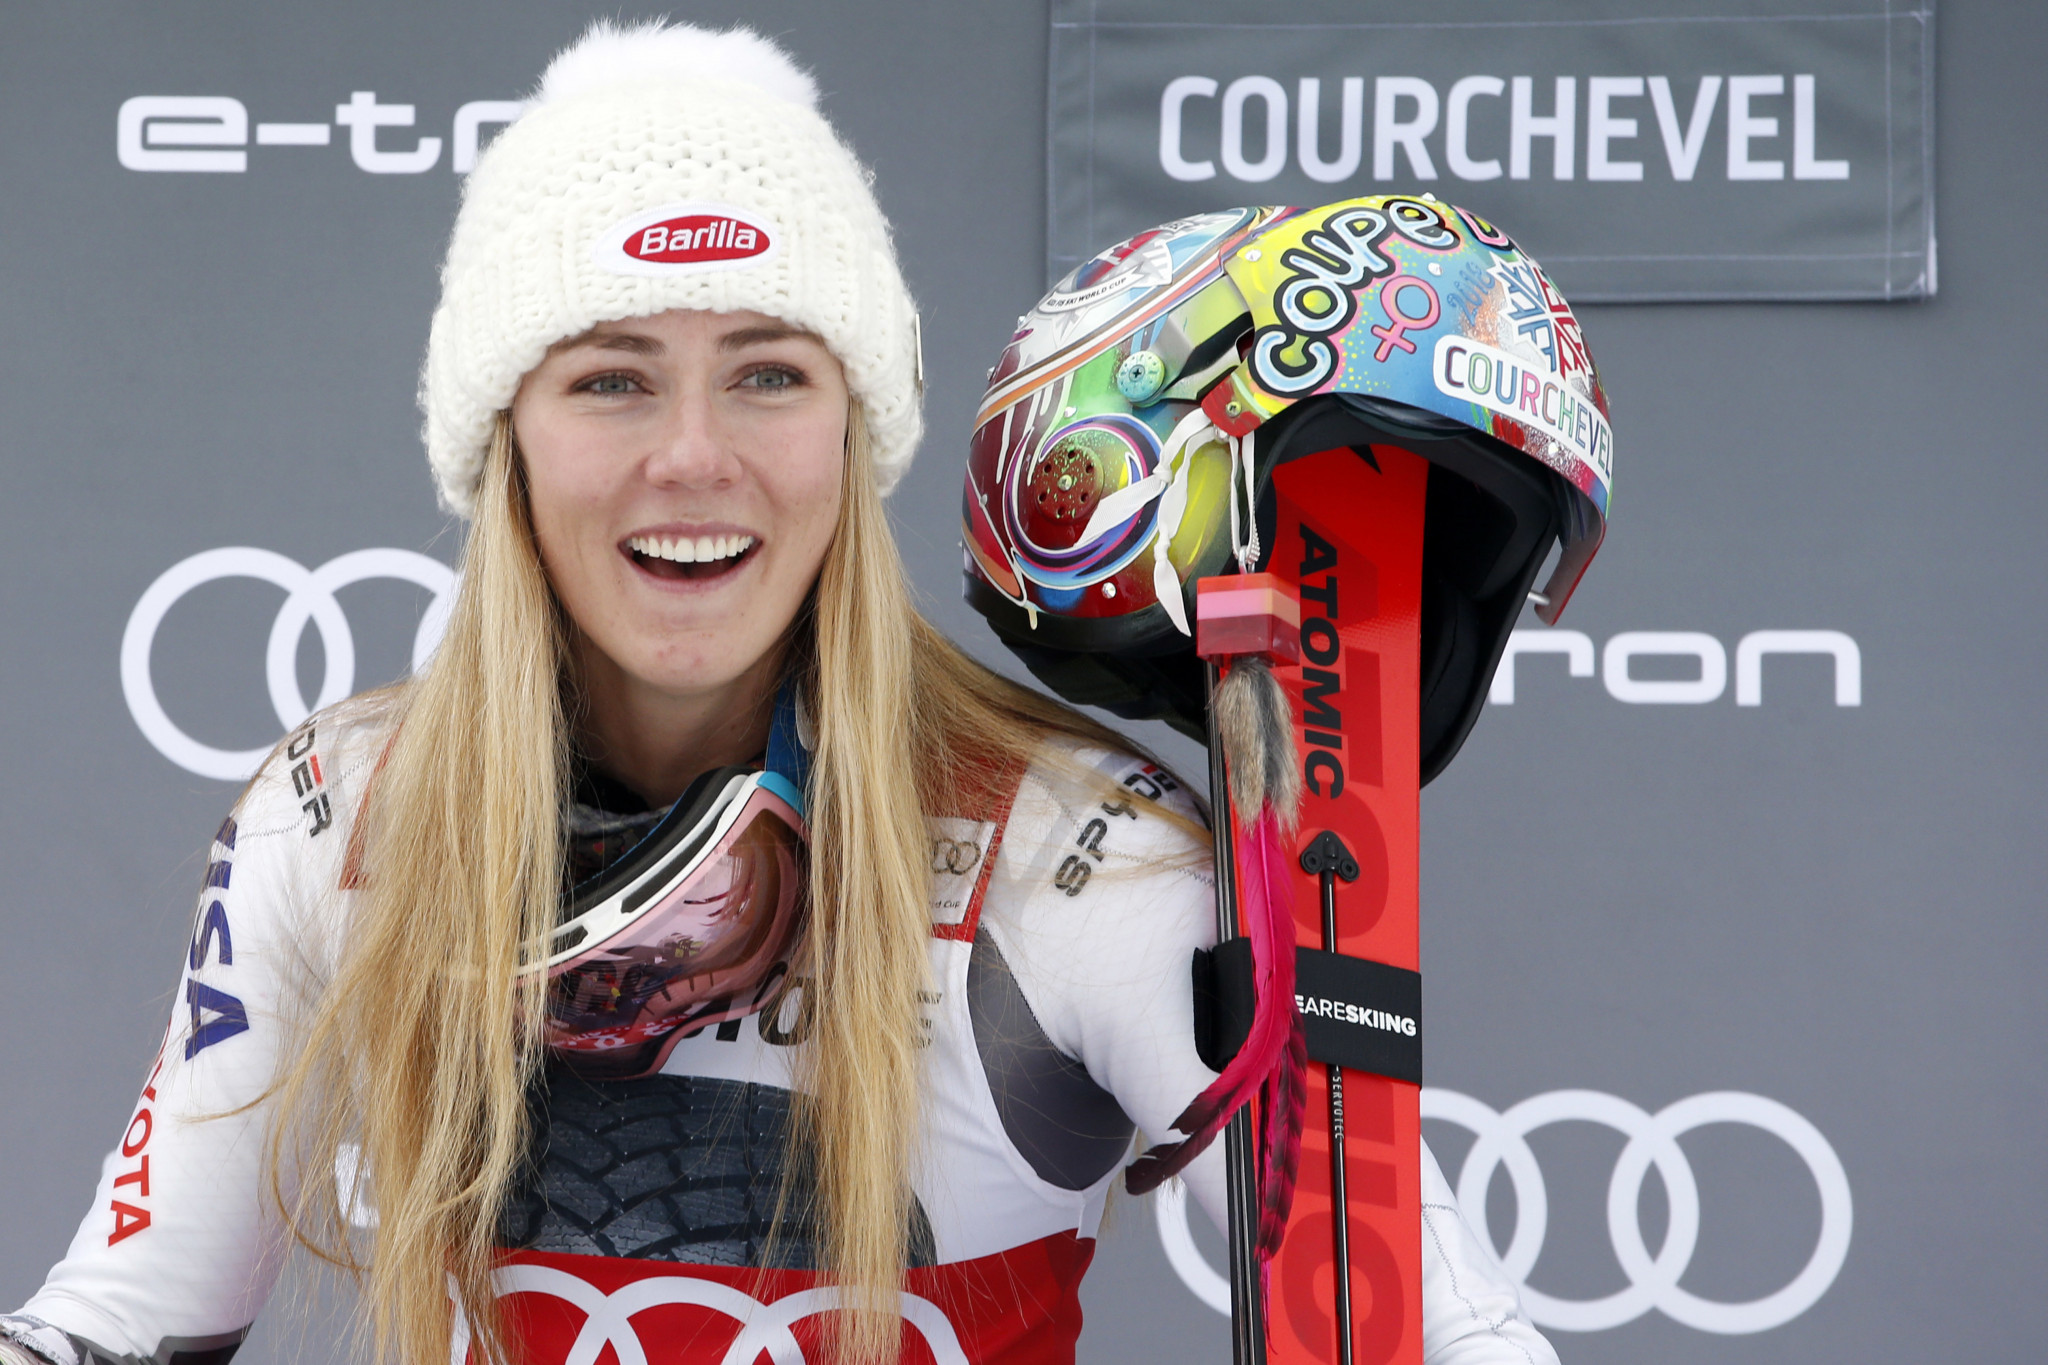 Mikaela Shiffrin has continued her unbeatable form with another win in Courchevel ©Getty Images